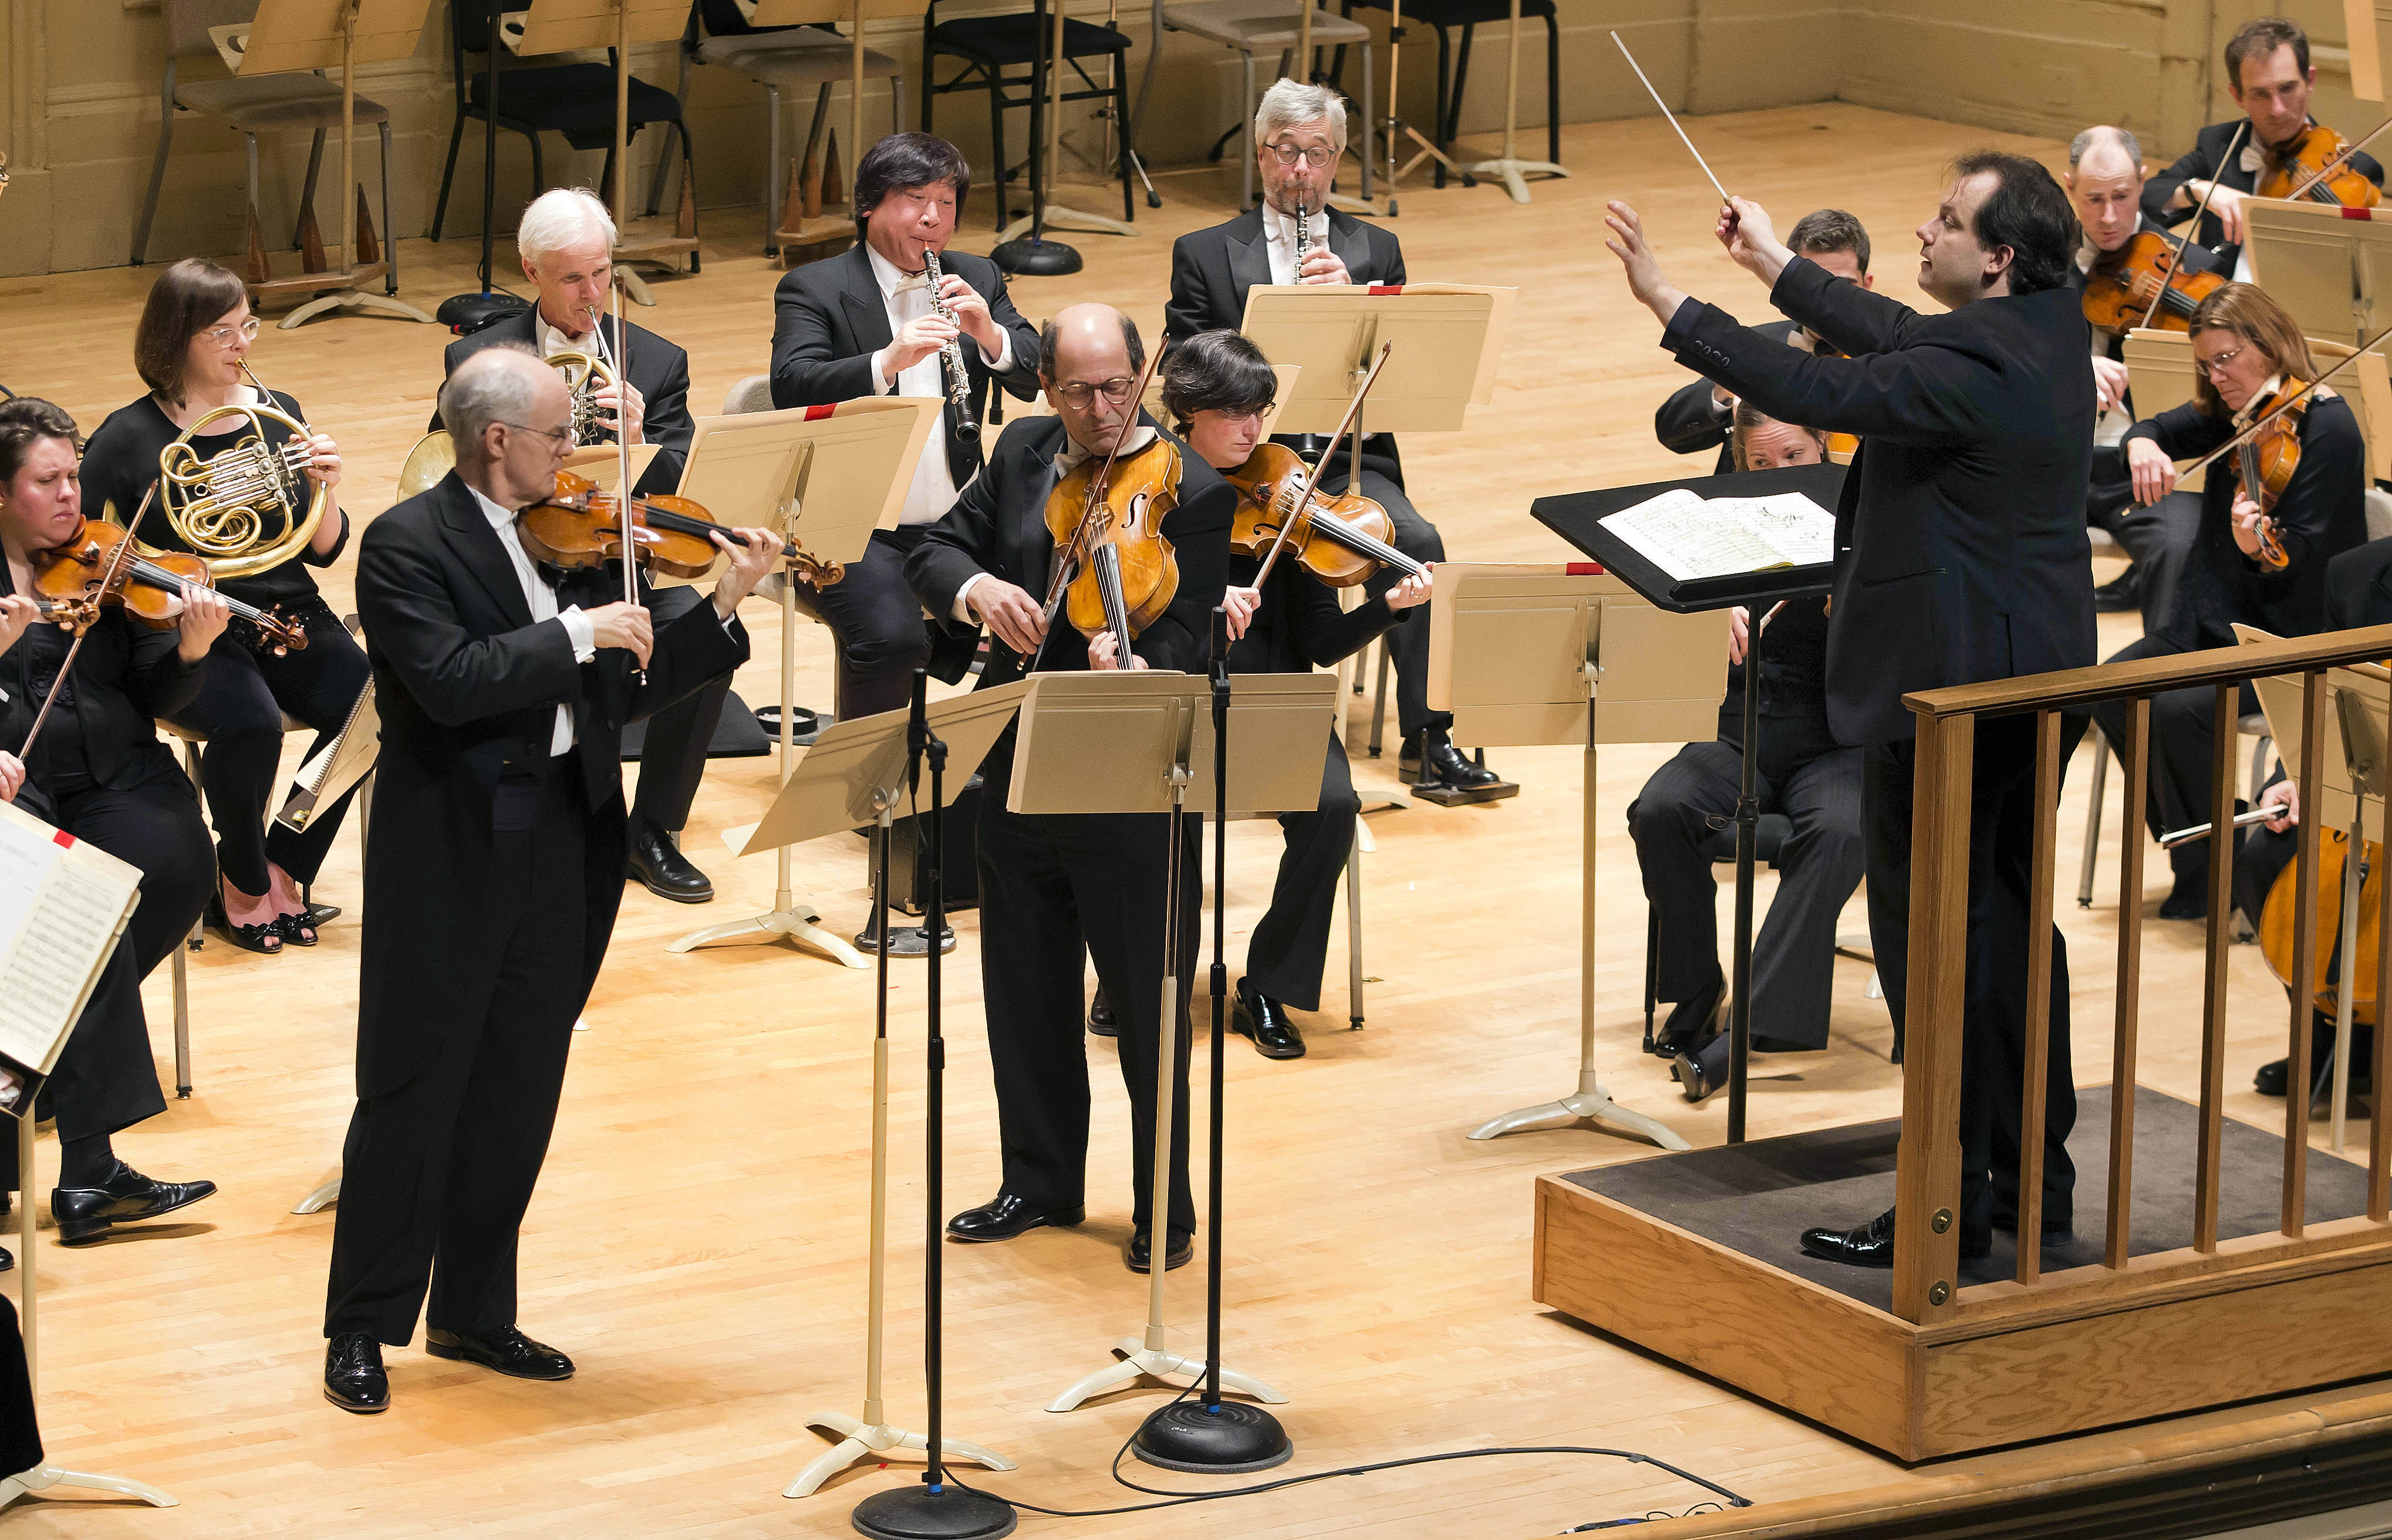 Here's how much the BSO's highest-paid musicians (all men